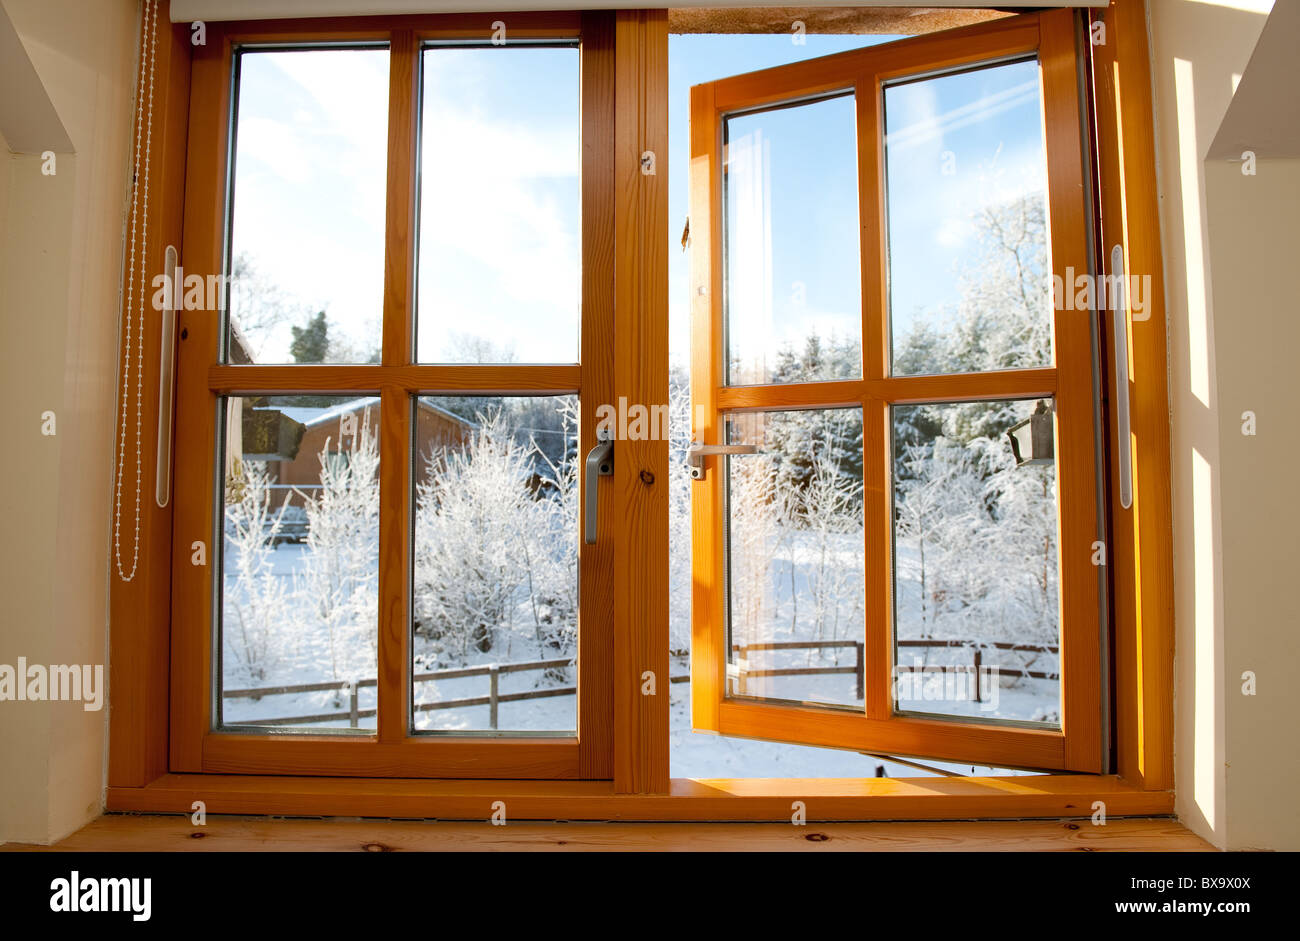 Early morning frosty winter view through a window. - Stock Image